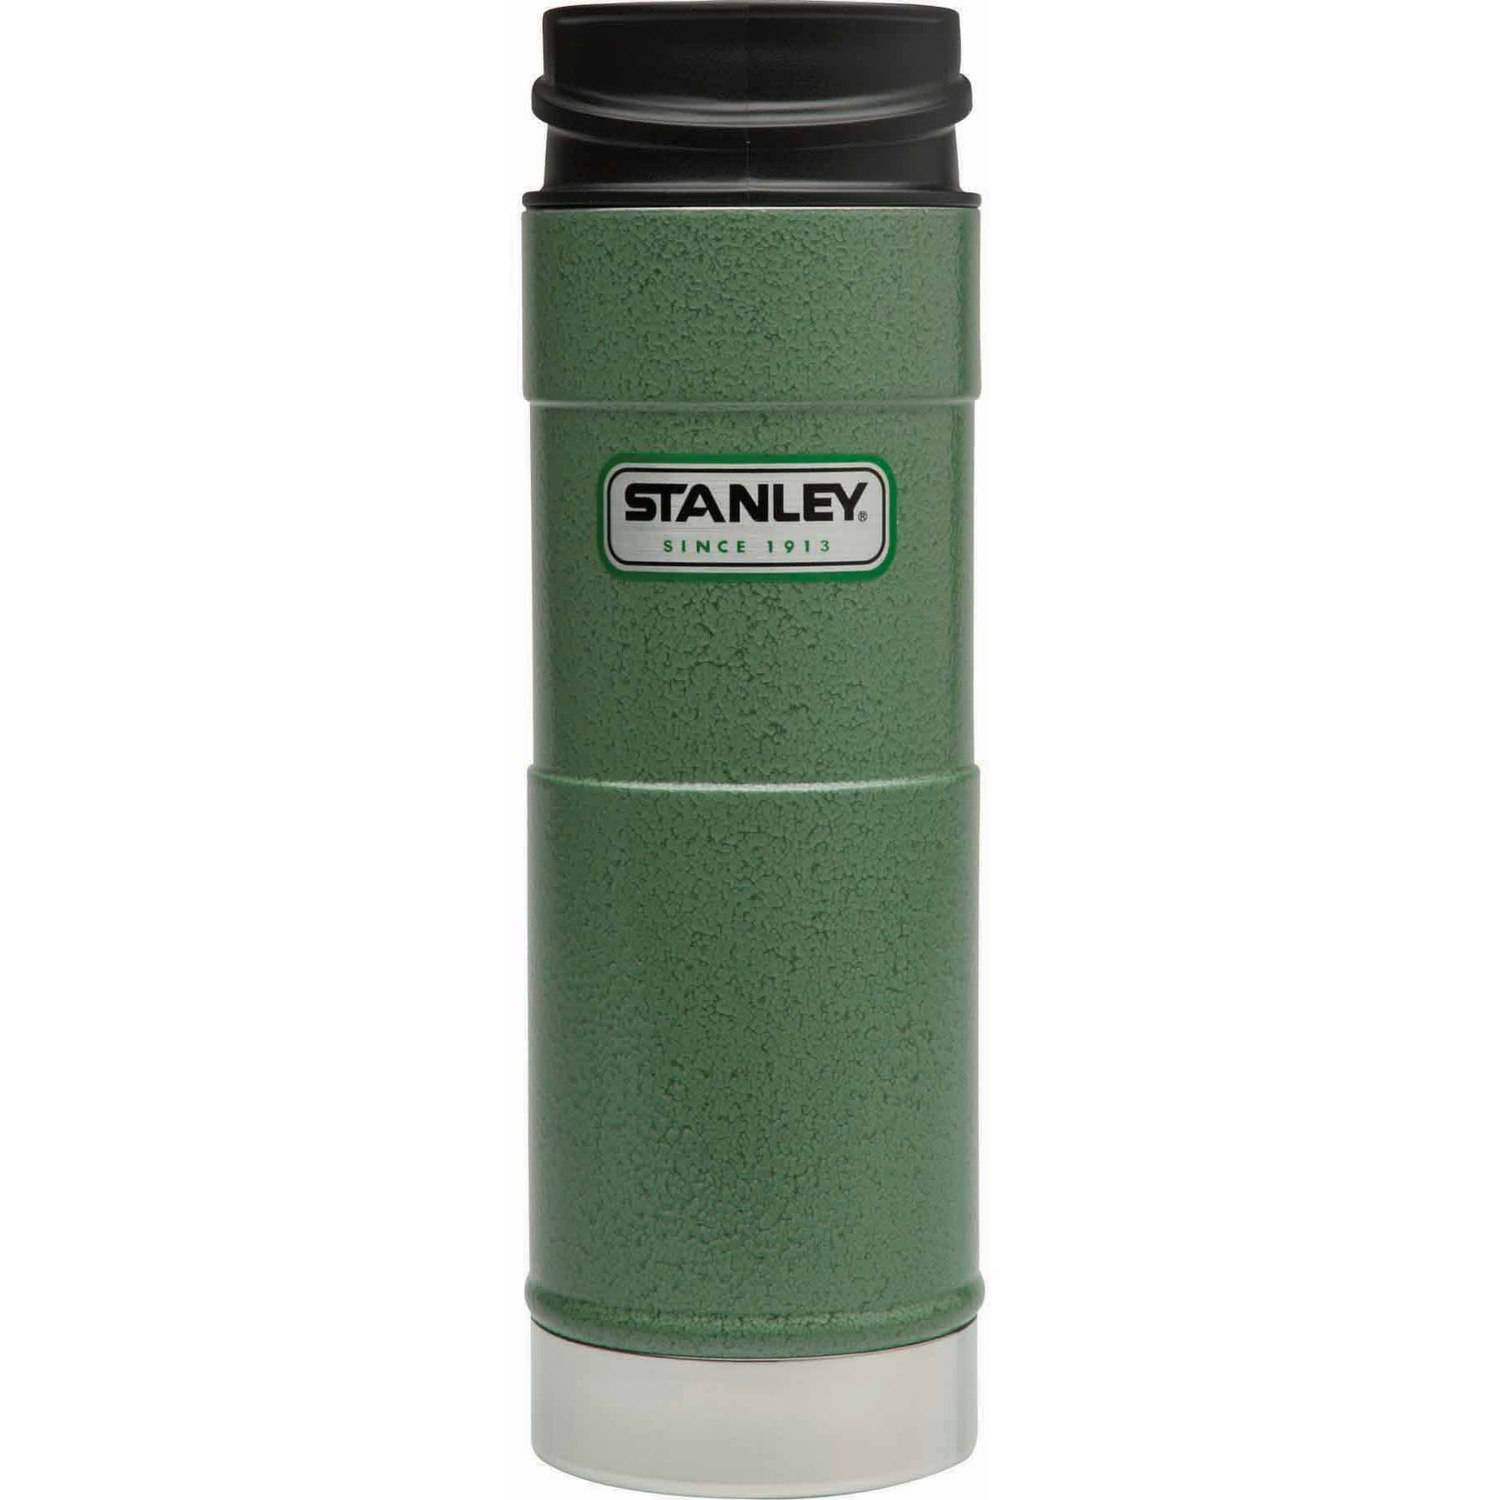 Stanley Food Thermos Reviews